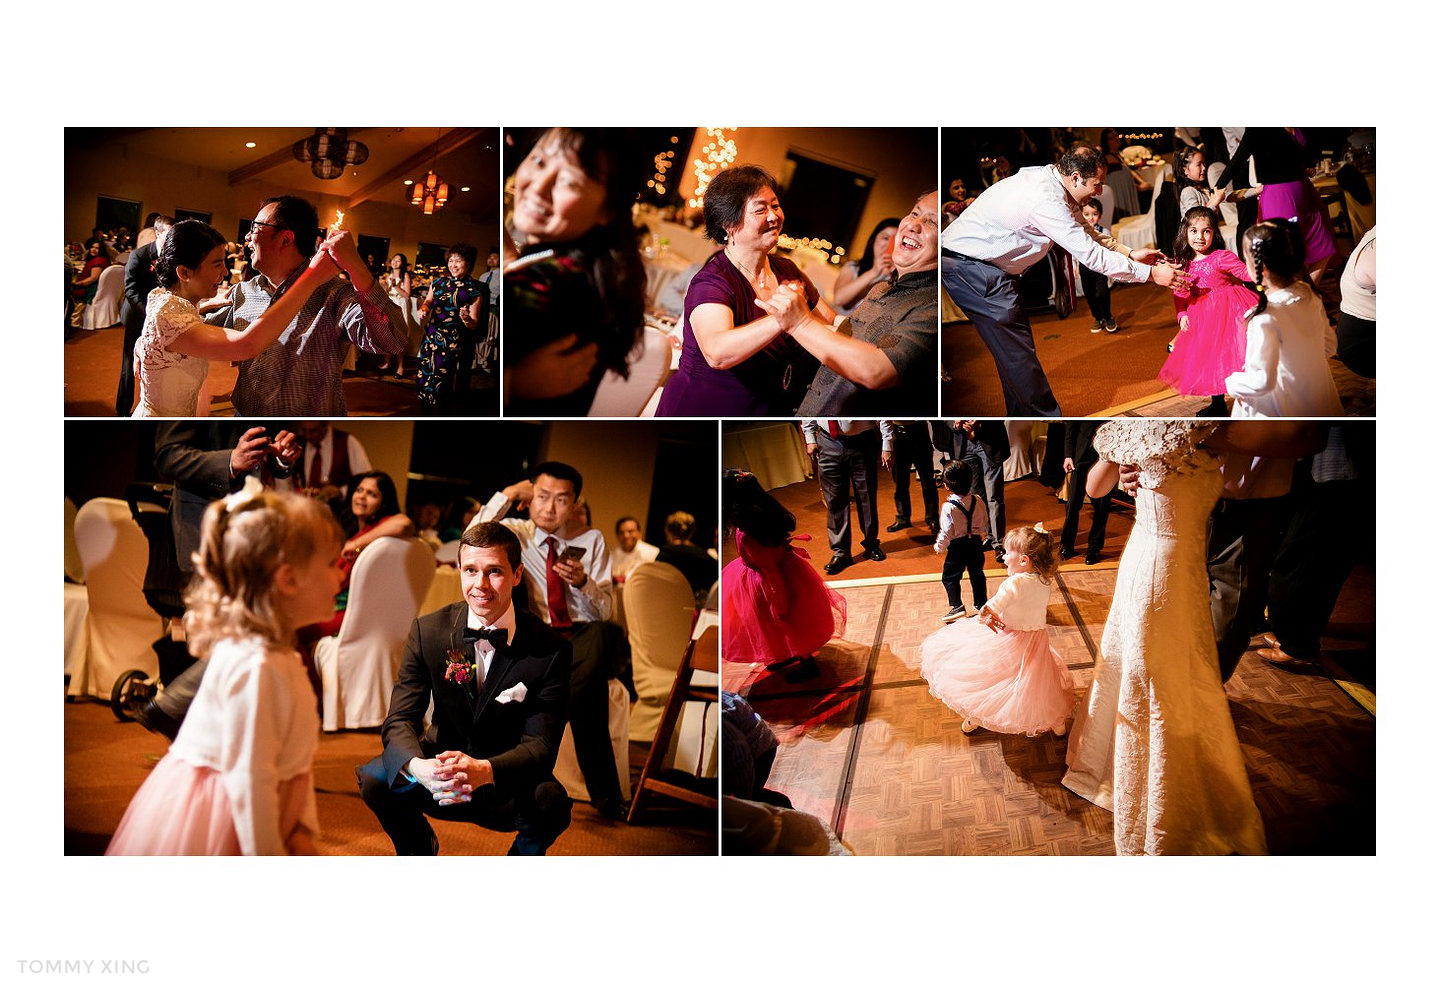 Tommy Xing Photography Seattle CAVE B ESTATE WINERY wedding 西雅图酒庄婚礼 43.jpg